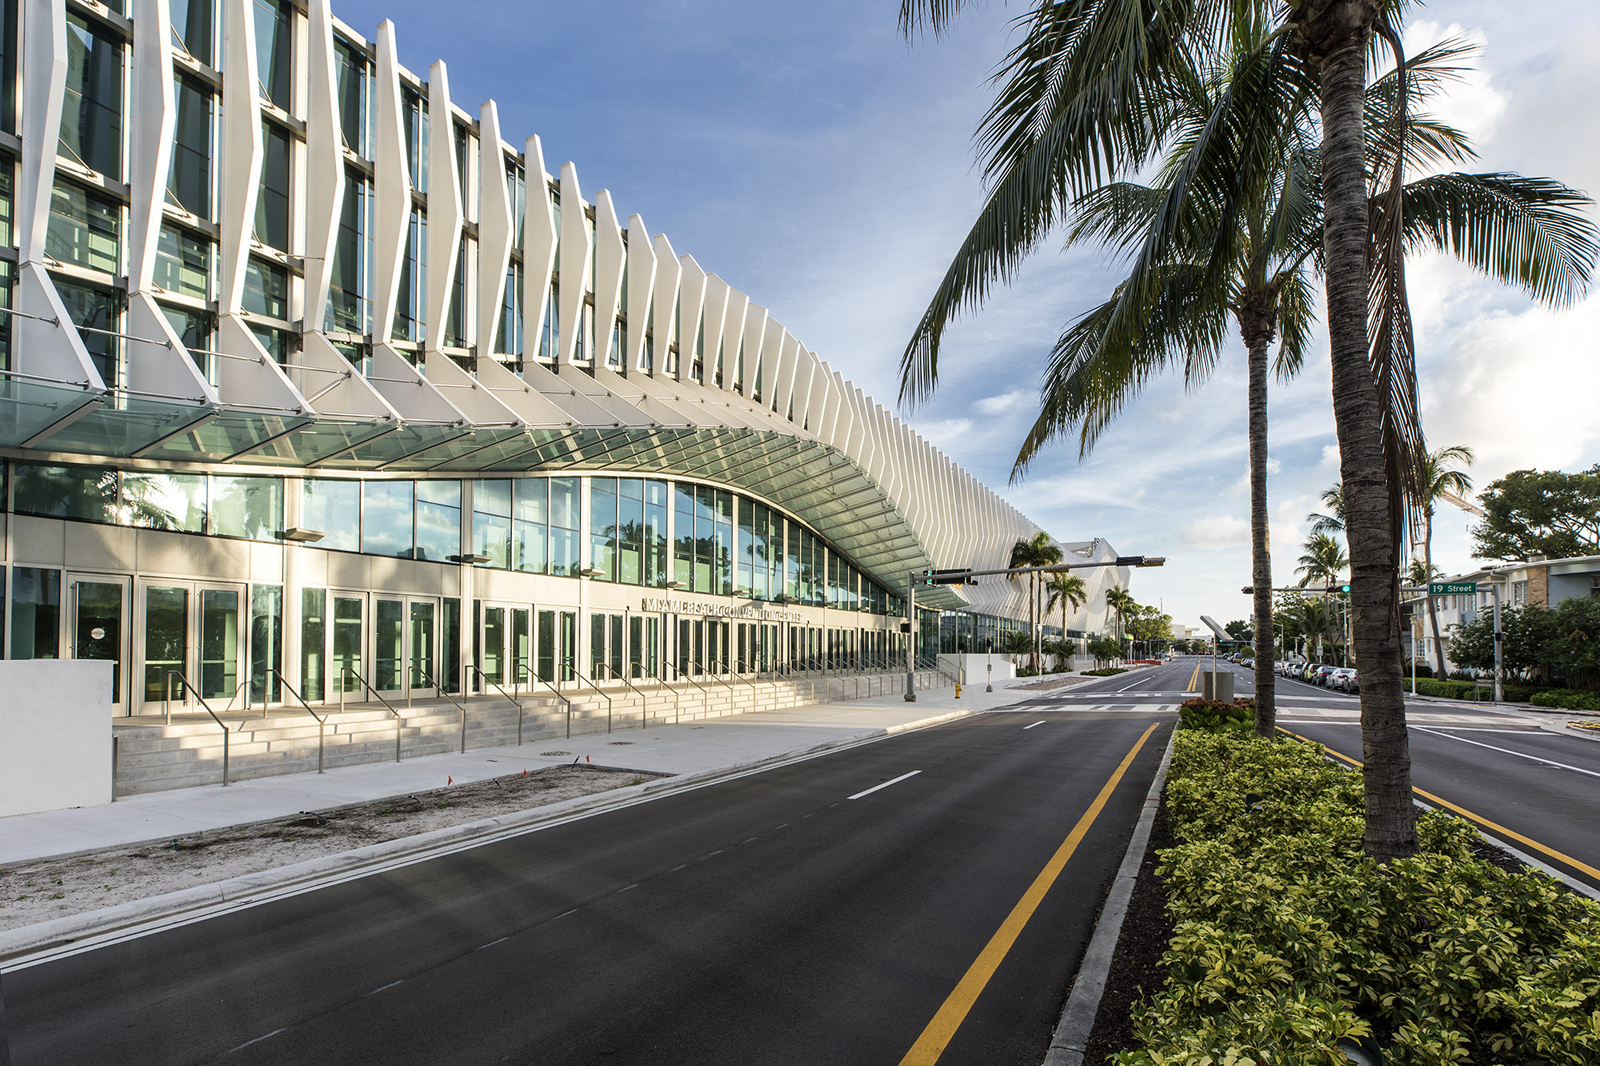 Miami Beach Convention Center's aluminum finned facade